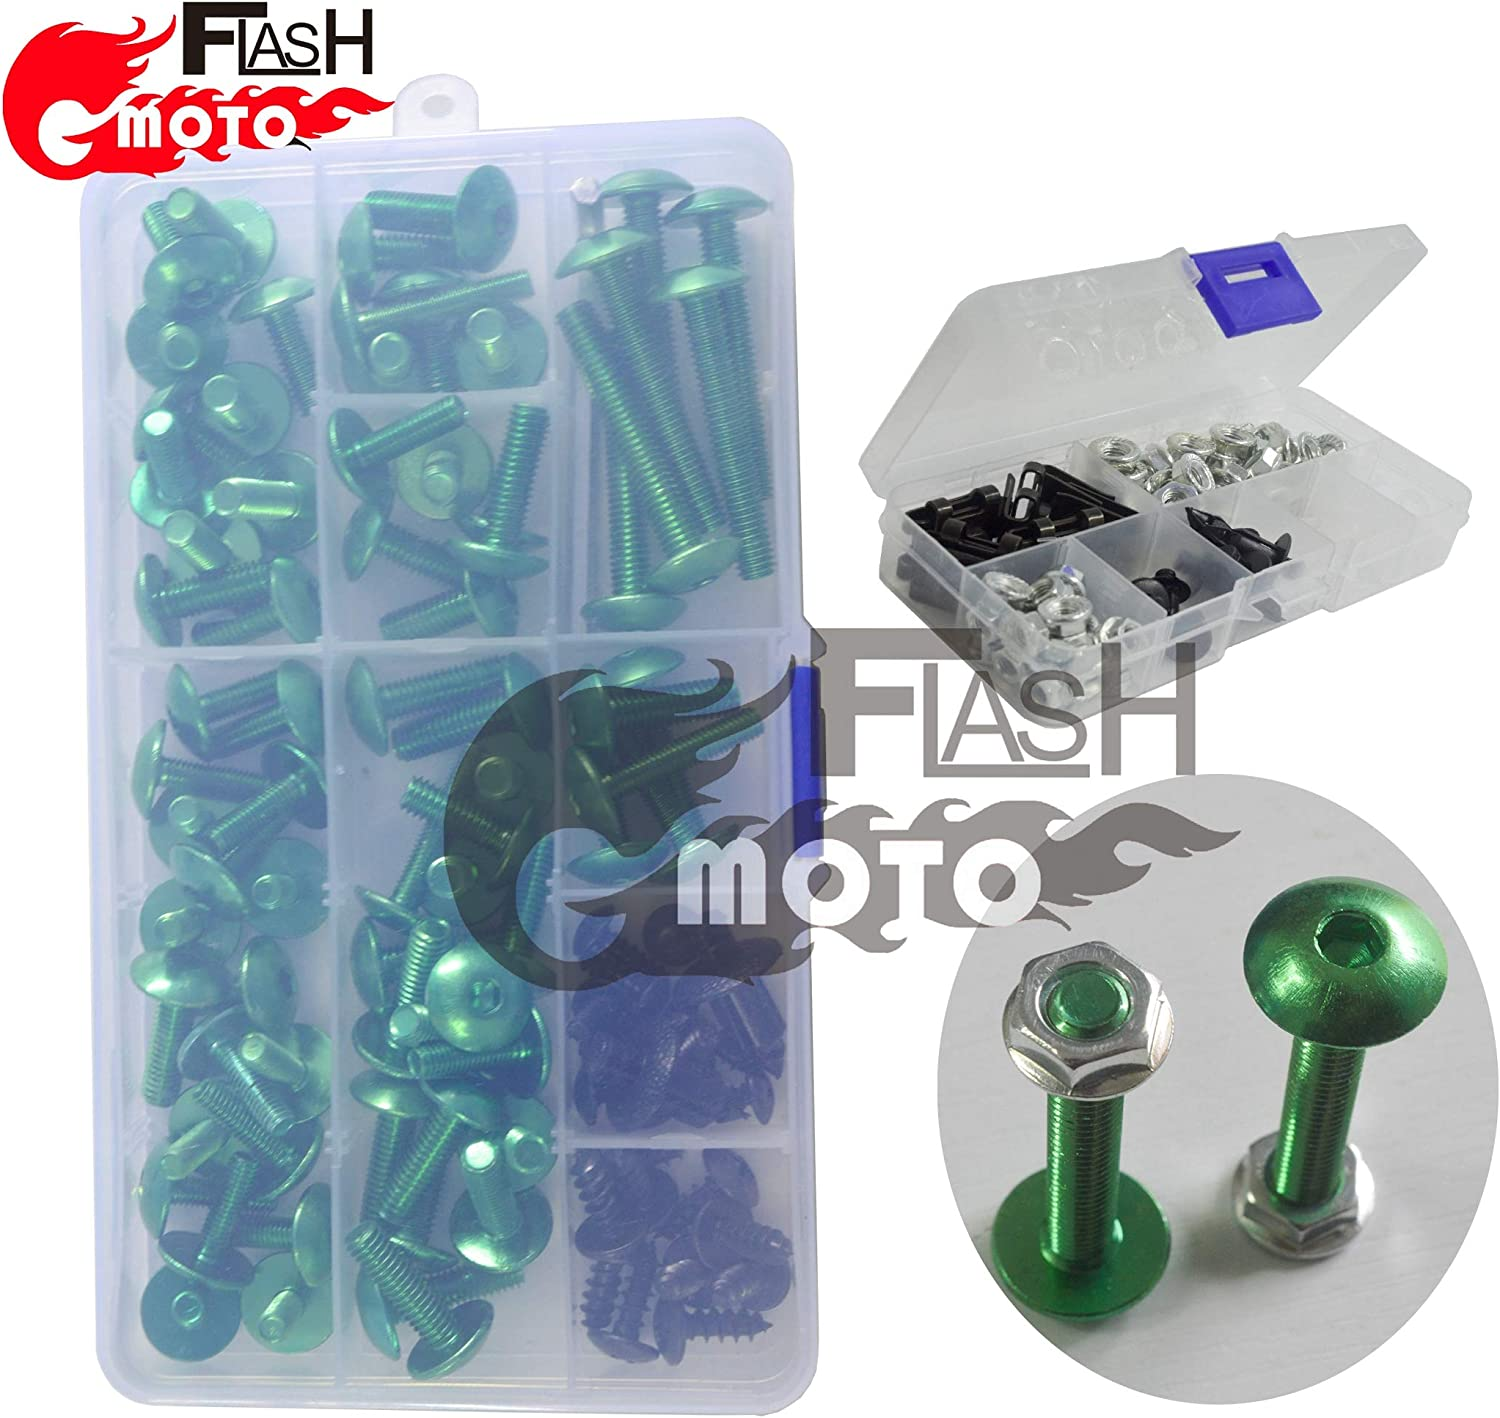 Flashmoto Motorcycle Screw Windshield Fairing Bolts Nuts Washer Kit Fastener Clips for kawasaki ZX9R 1998 1999 Silver